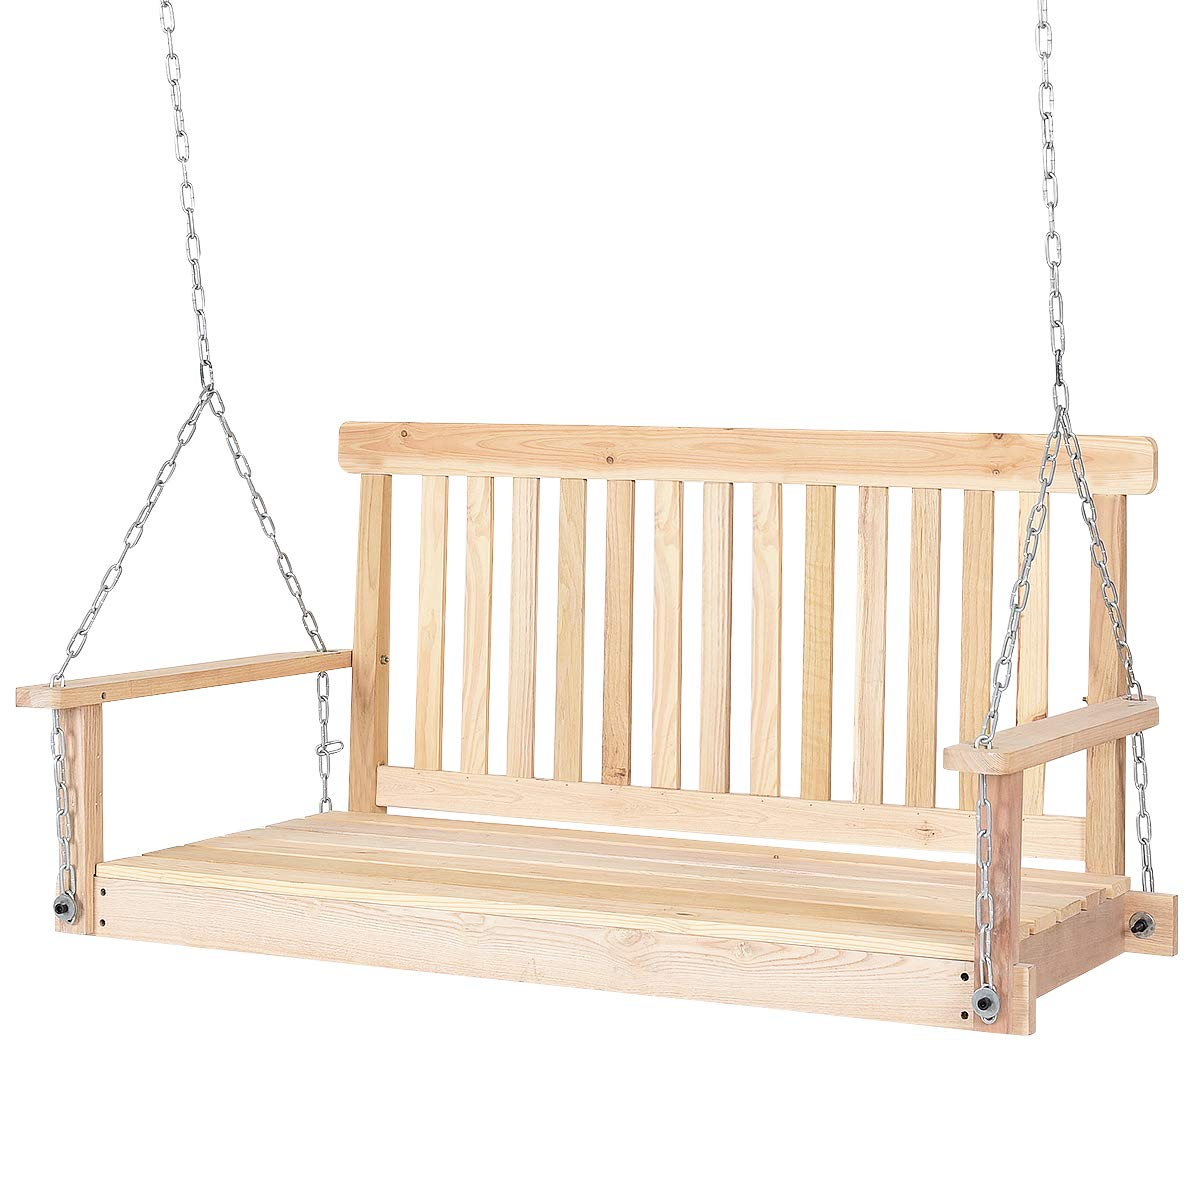 Giantex 4 FT Porch Swing with Chain Natural Wood Garden Swing Seat Patio Hanging Seat by Giantex